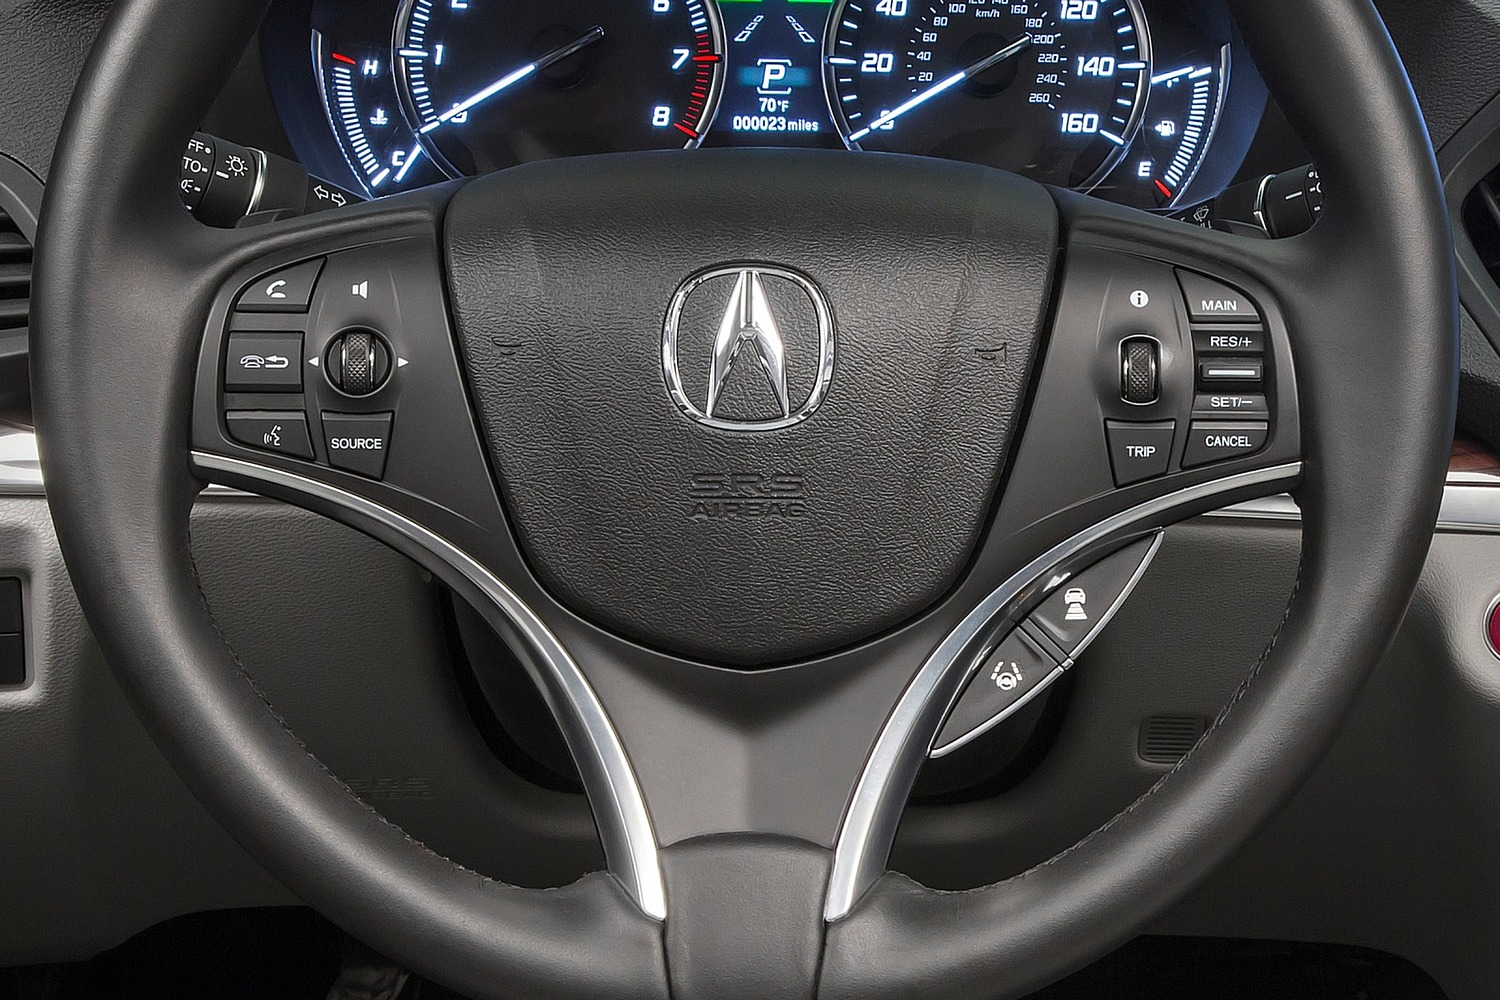 2016 Acura MDX SH-AWD w/Technology, Entertainment and AcuraWatch Plus Packages 4dr SUV Steering Wheel Detail